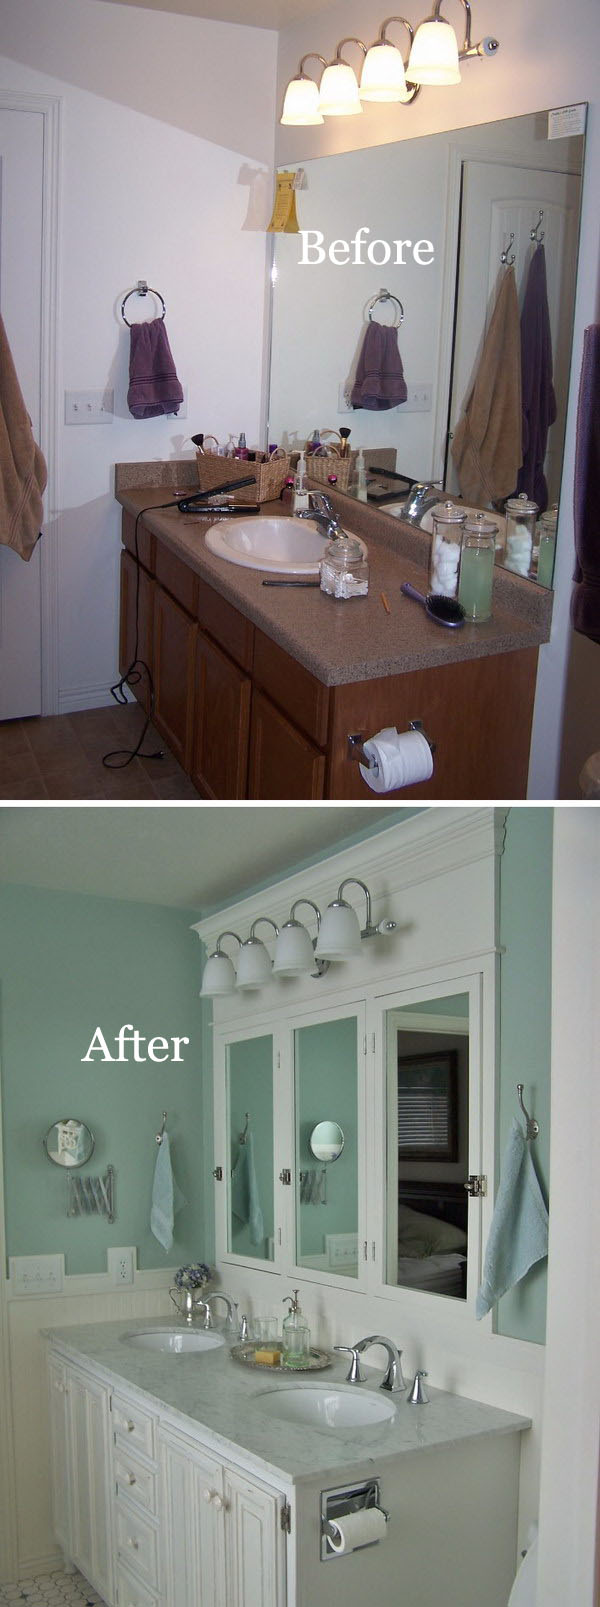 Small Bathroom Remodel With Blue Painted Walls Before After